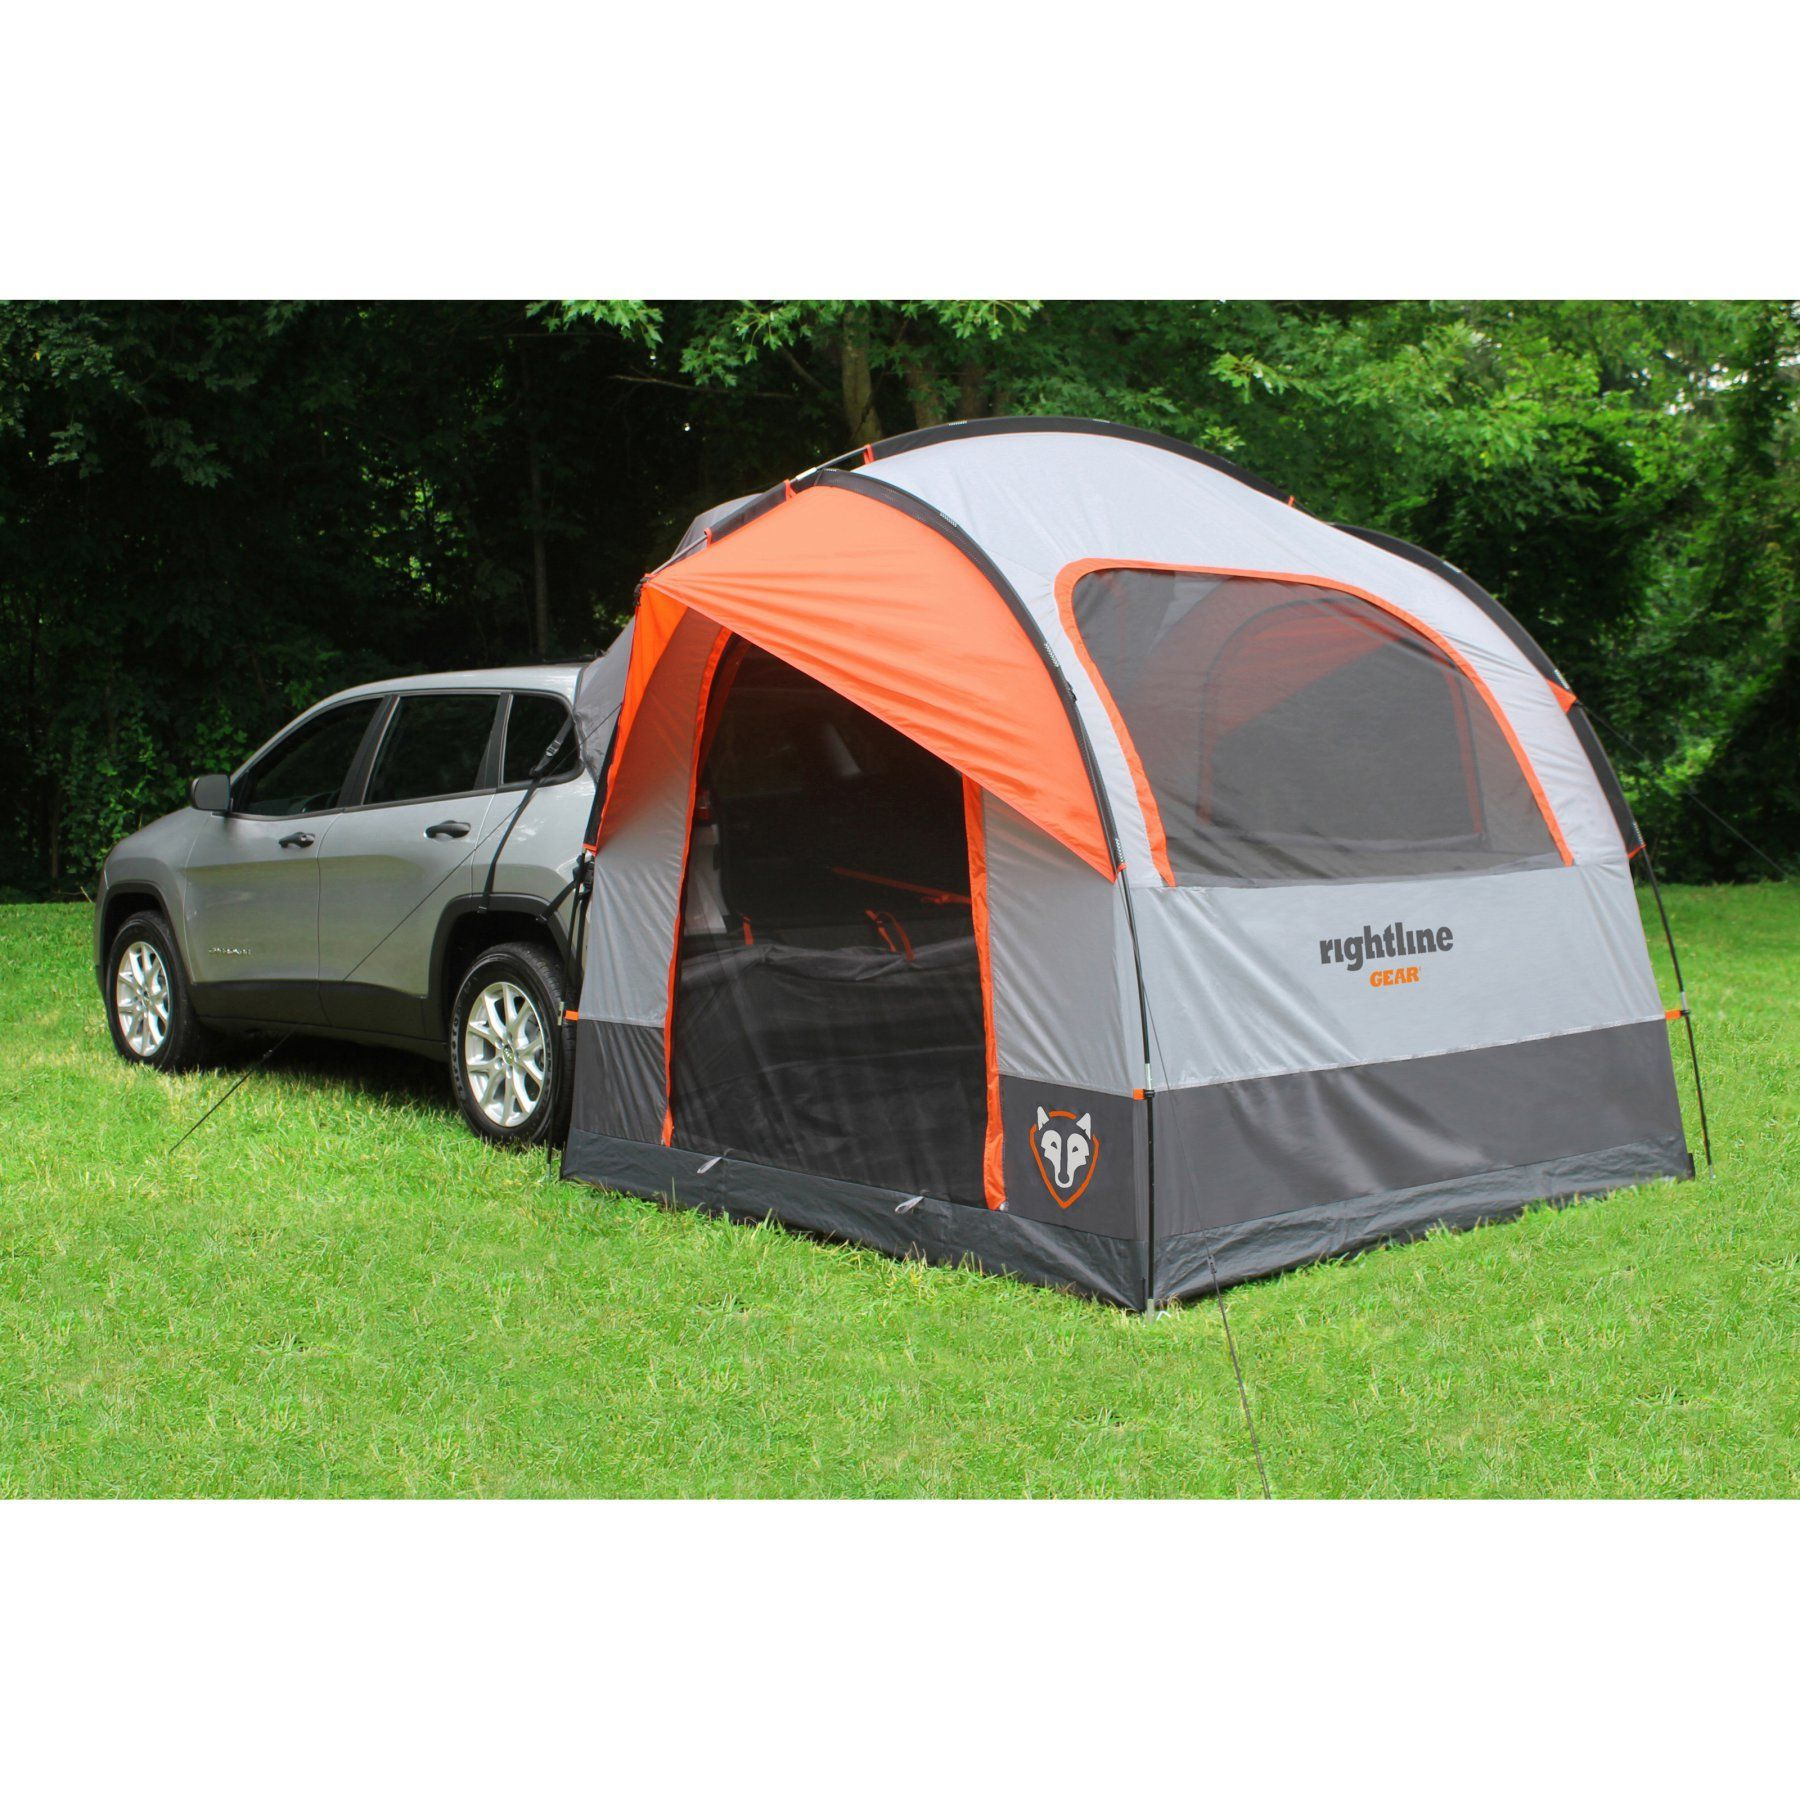 Rightline Gear SUV Tent 110907 Products Suv tent